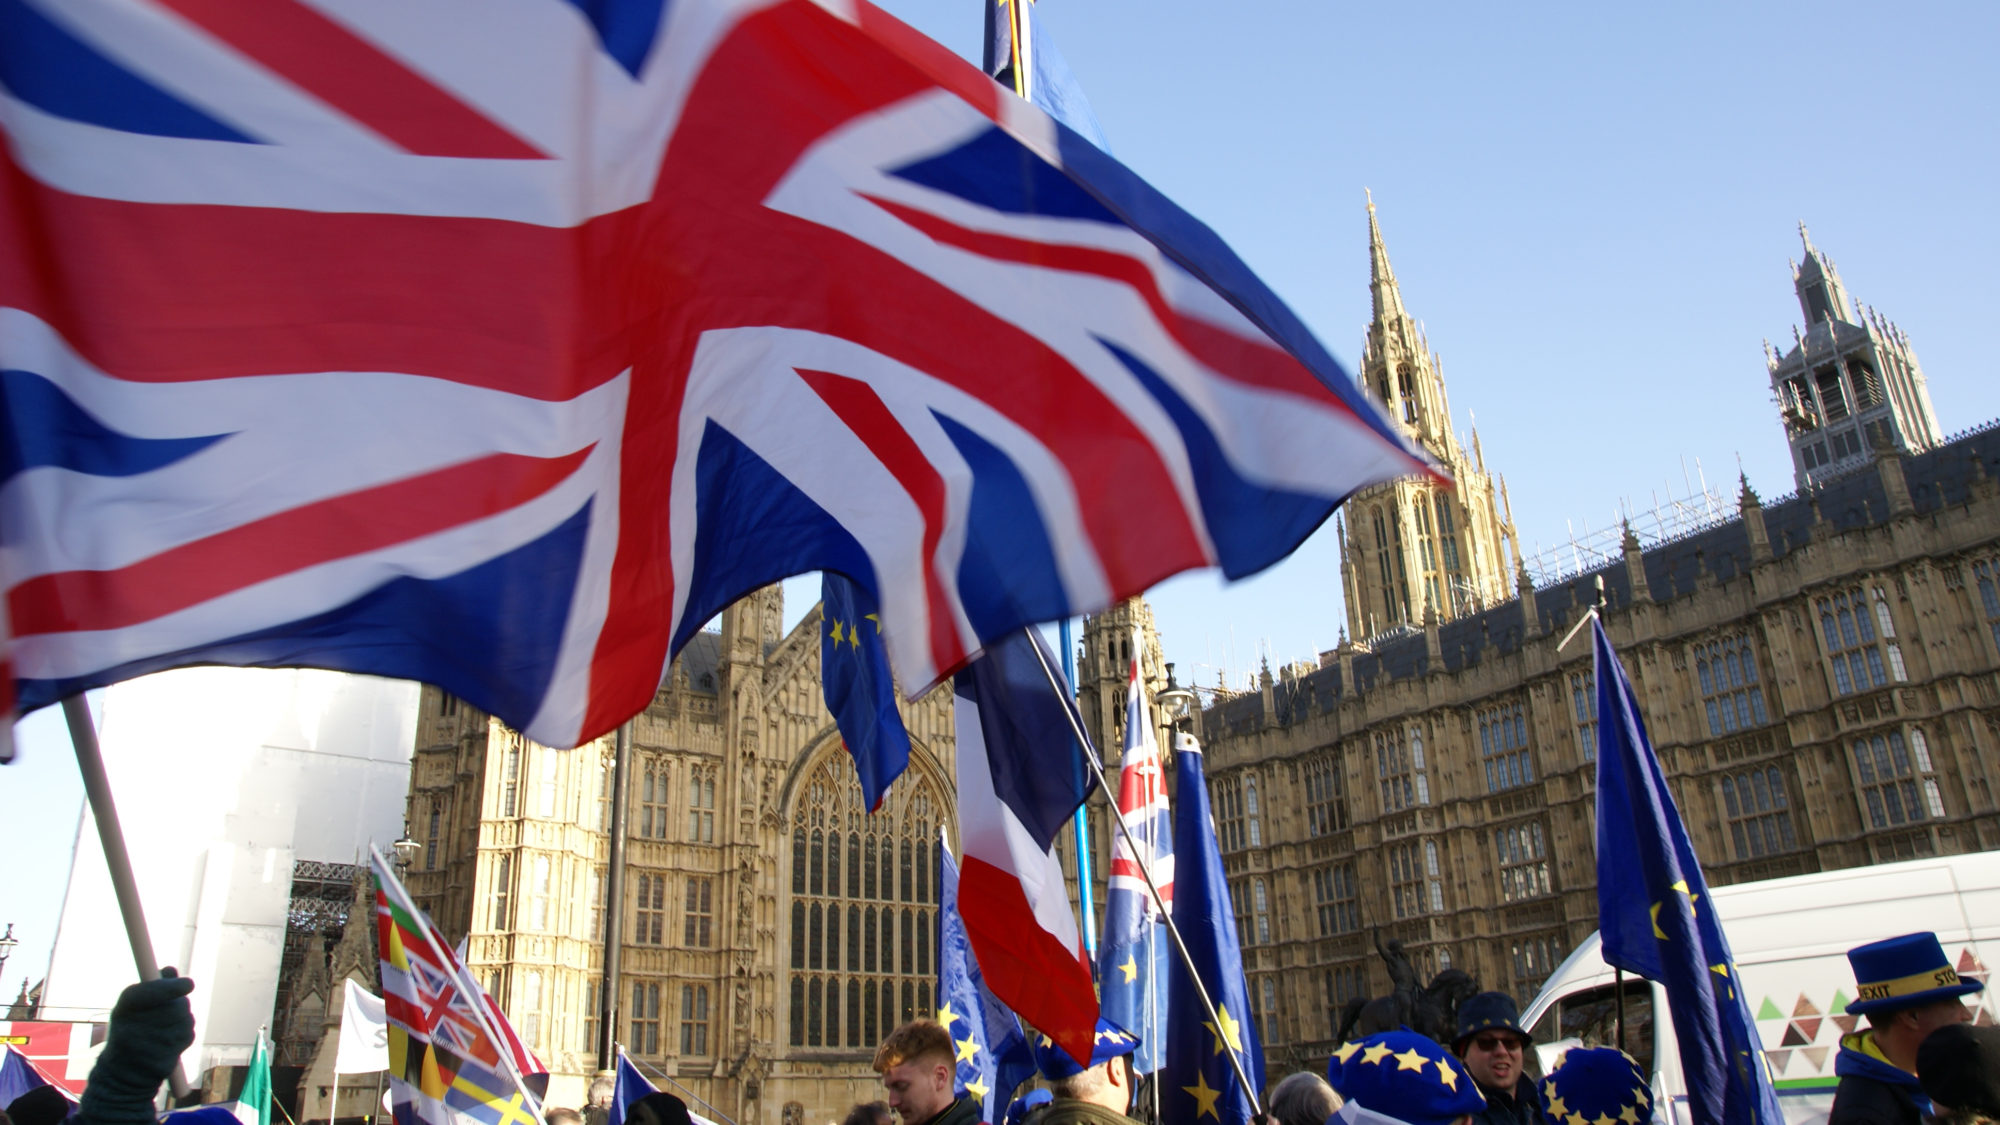 People stand with British and EU flags outside of Westminster Palace.